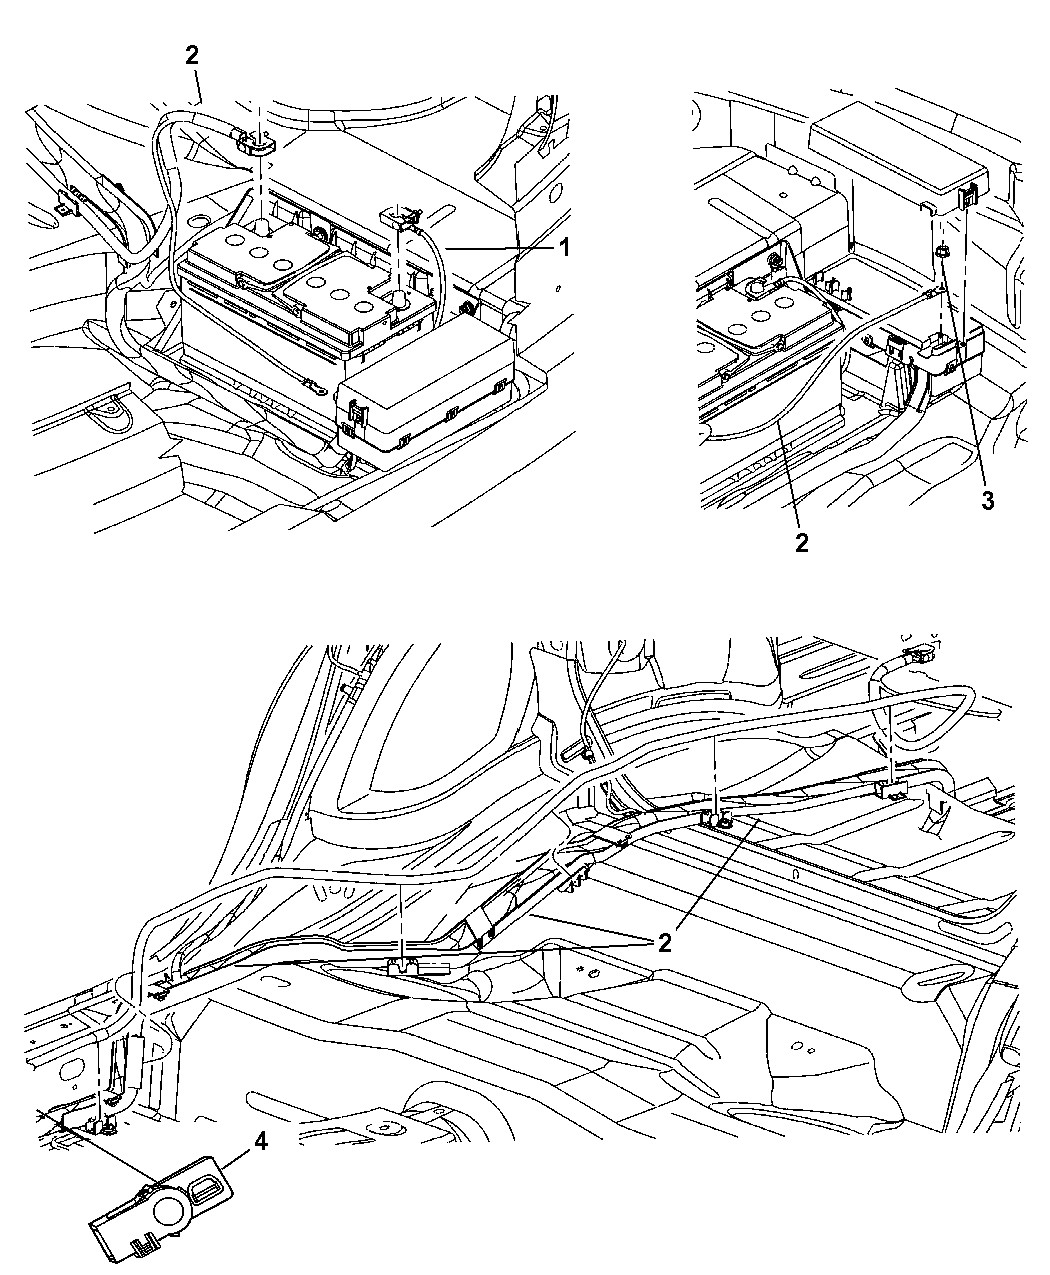 2010 Chrysler 300 Battery Wiring Diagram Library